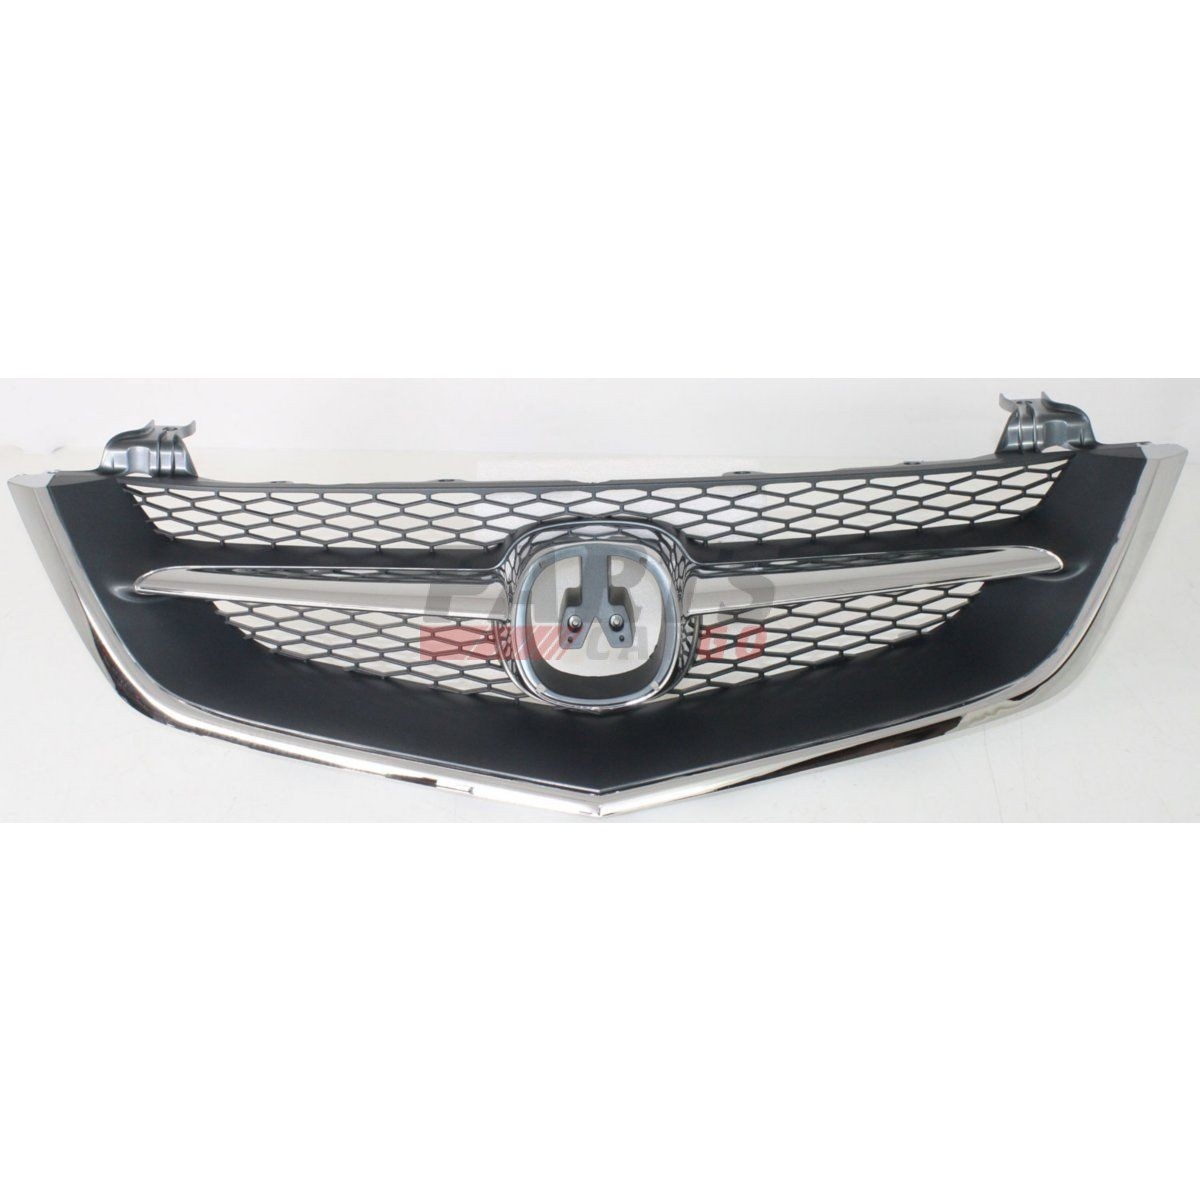 NEW FRONT GRILLE CHROME SHELL W/ BLACK INSERT FITS 2002-03